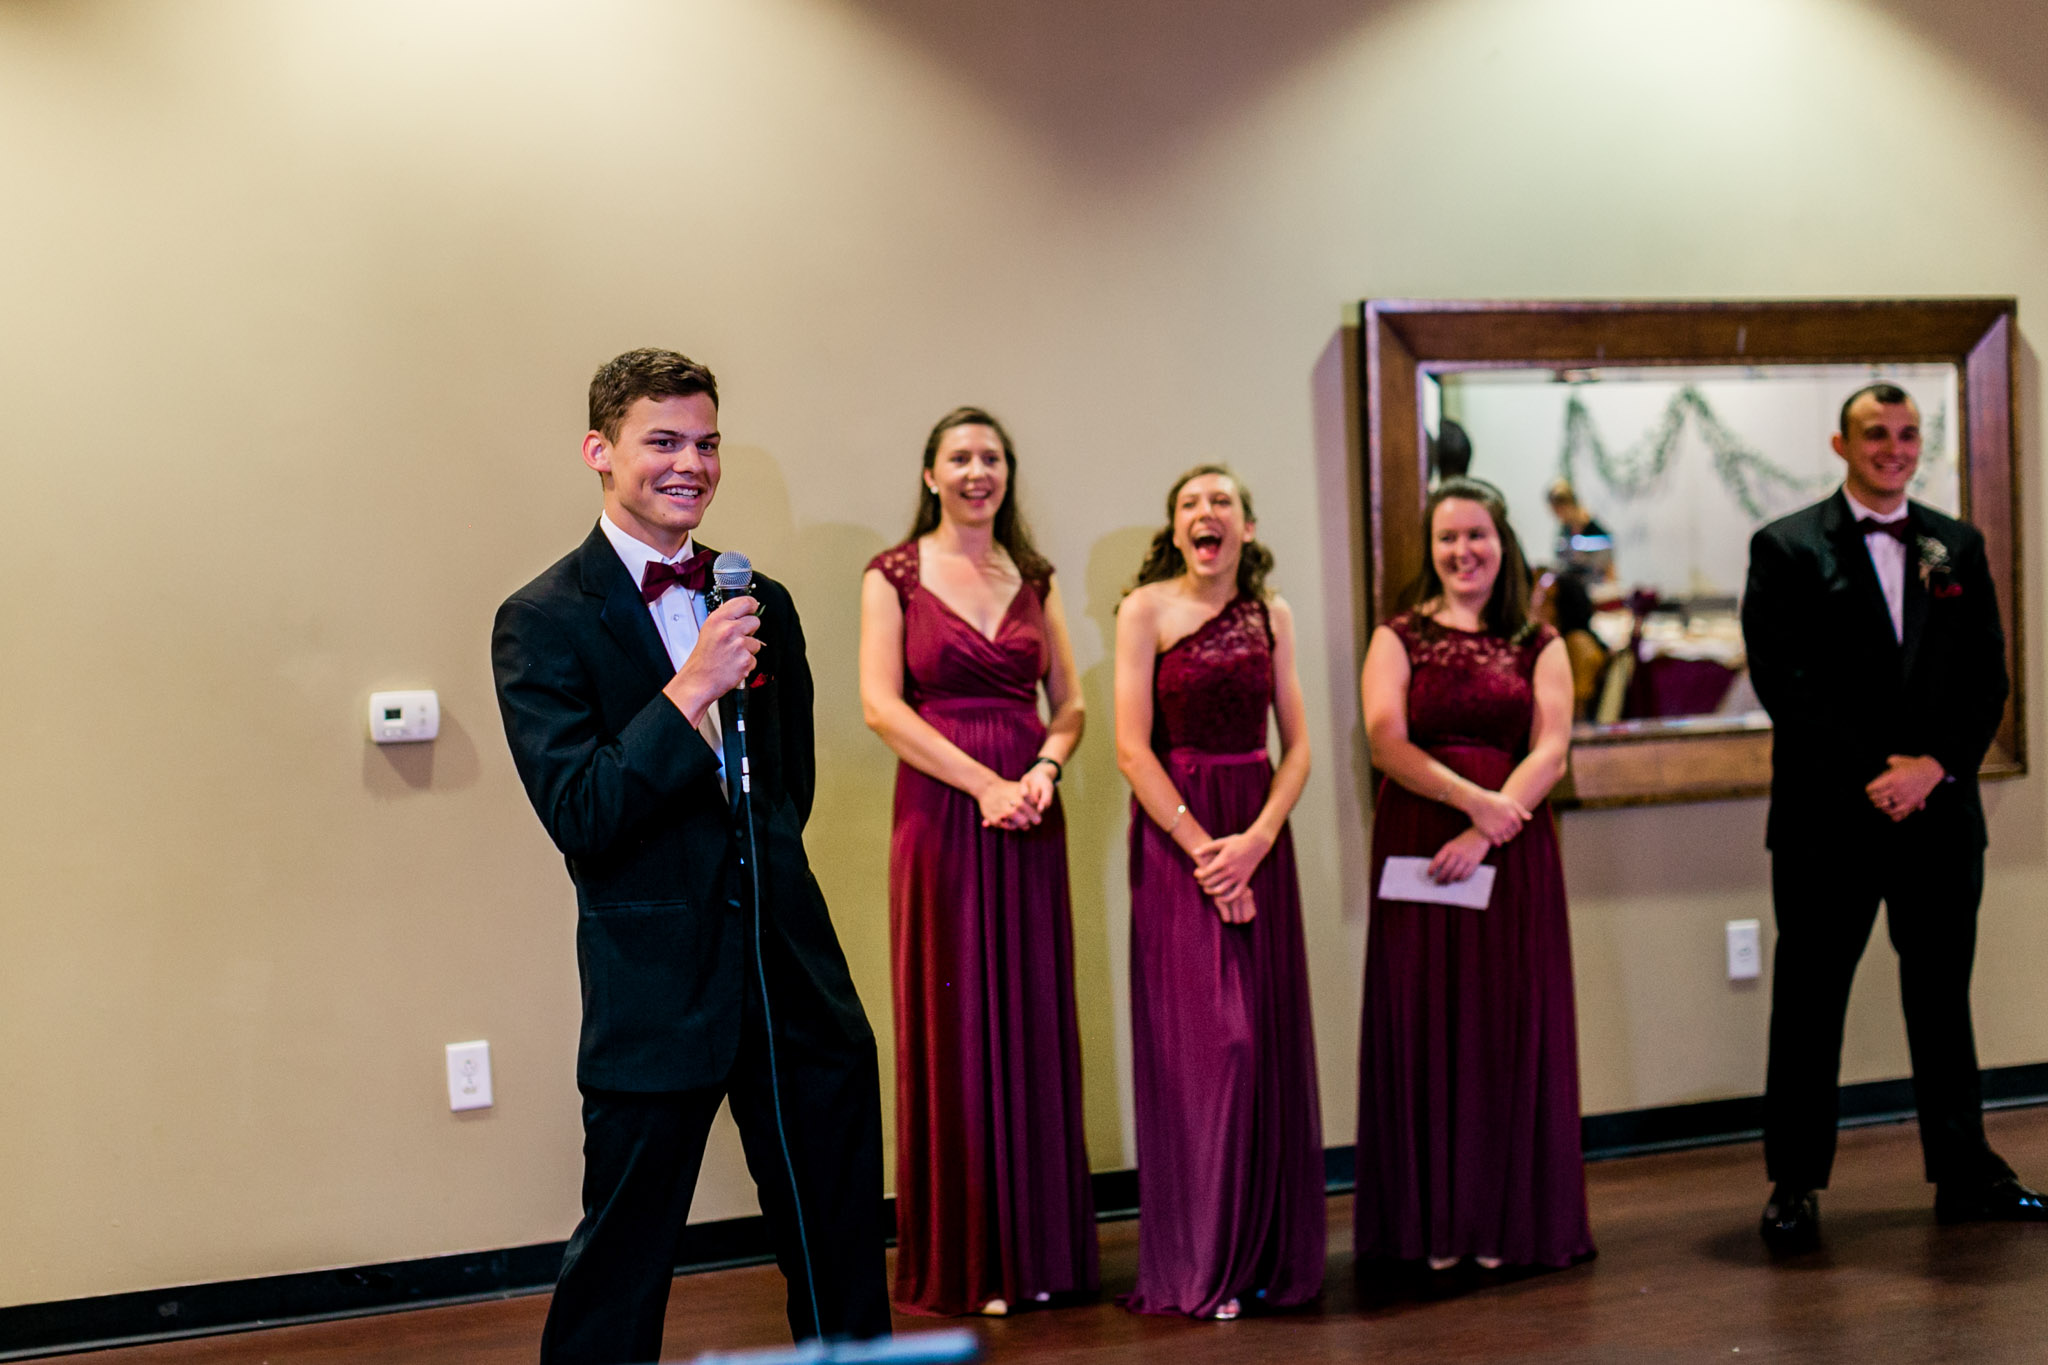 Groomsmen giving toast at wedding reception | Royal Banquet Conference Center | Raleigh Wedding Photographer | By G. Lin Photography